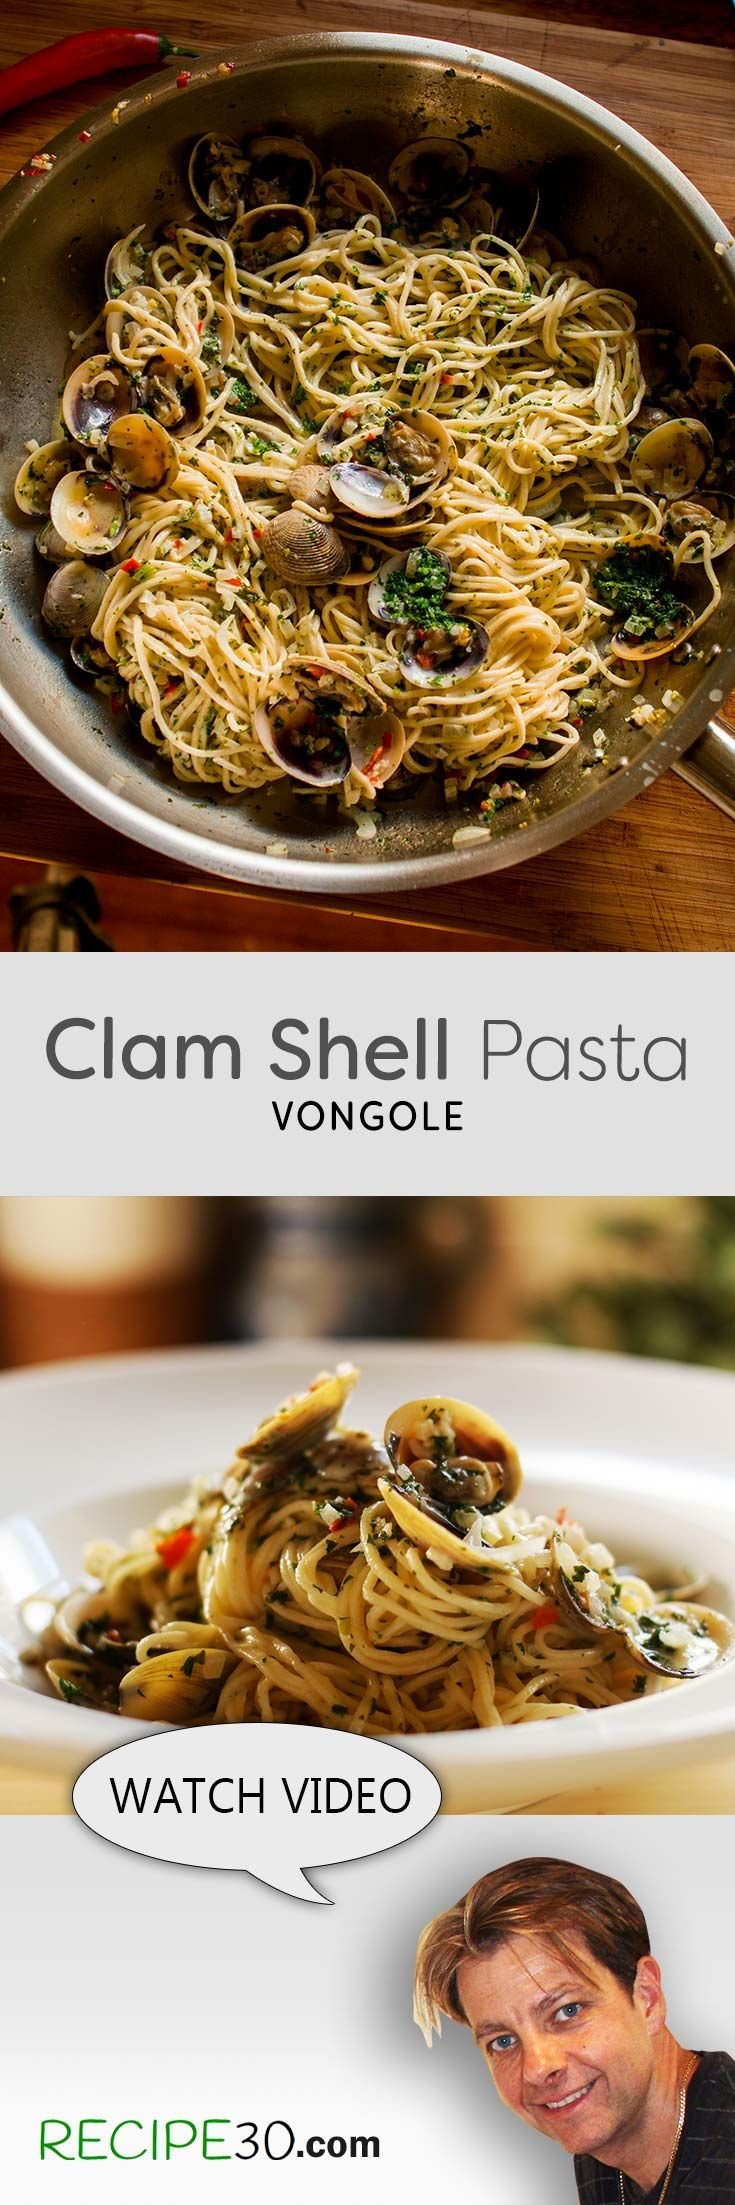 Clam Shell Pasta Vongole Linguine with chili and garlic